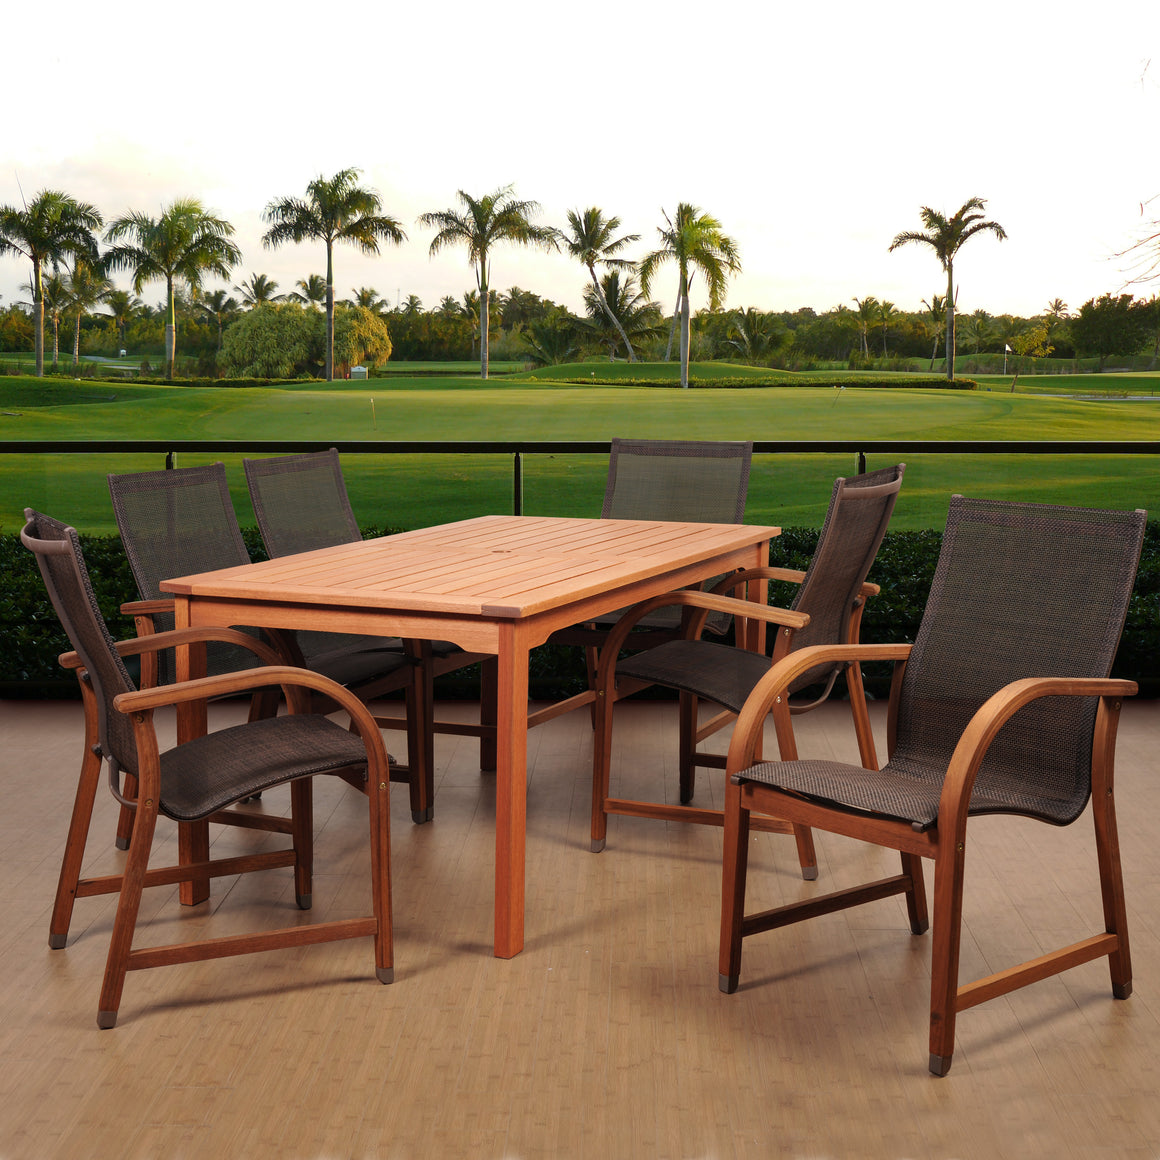 Amazonia Bahamas 7 Piece Eucalyptus Rectangular Dining Set , International Home Miami- grayburd